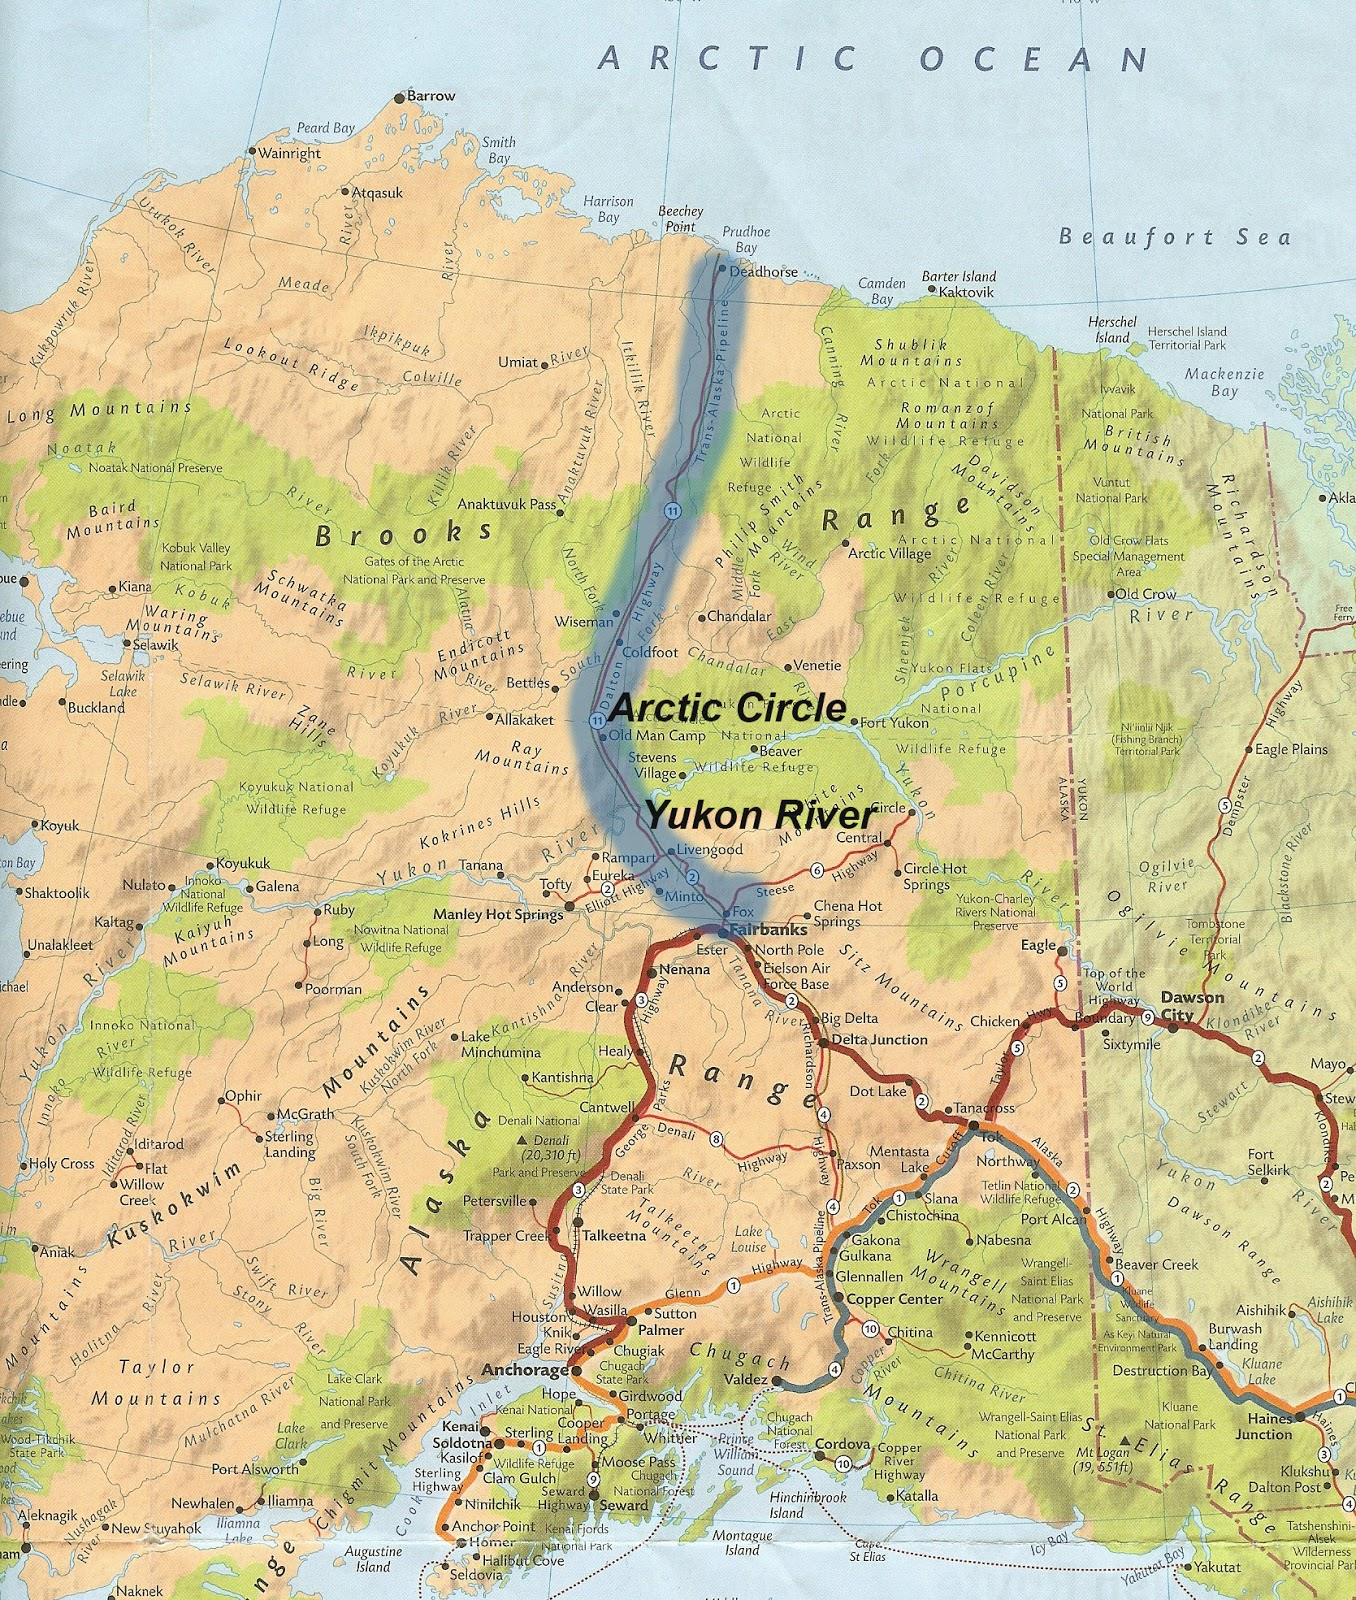 you might recognize some of these shows ice road truckers worlds most dangerous roads and others have been filmed on the dalton hwy